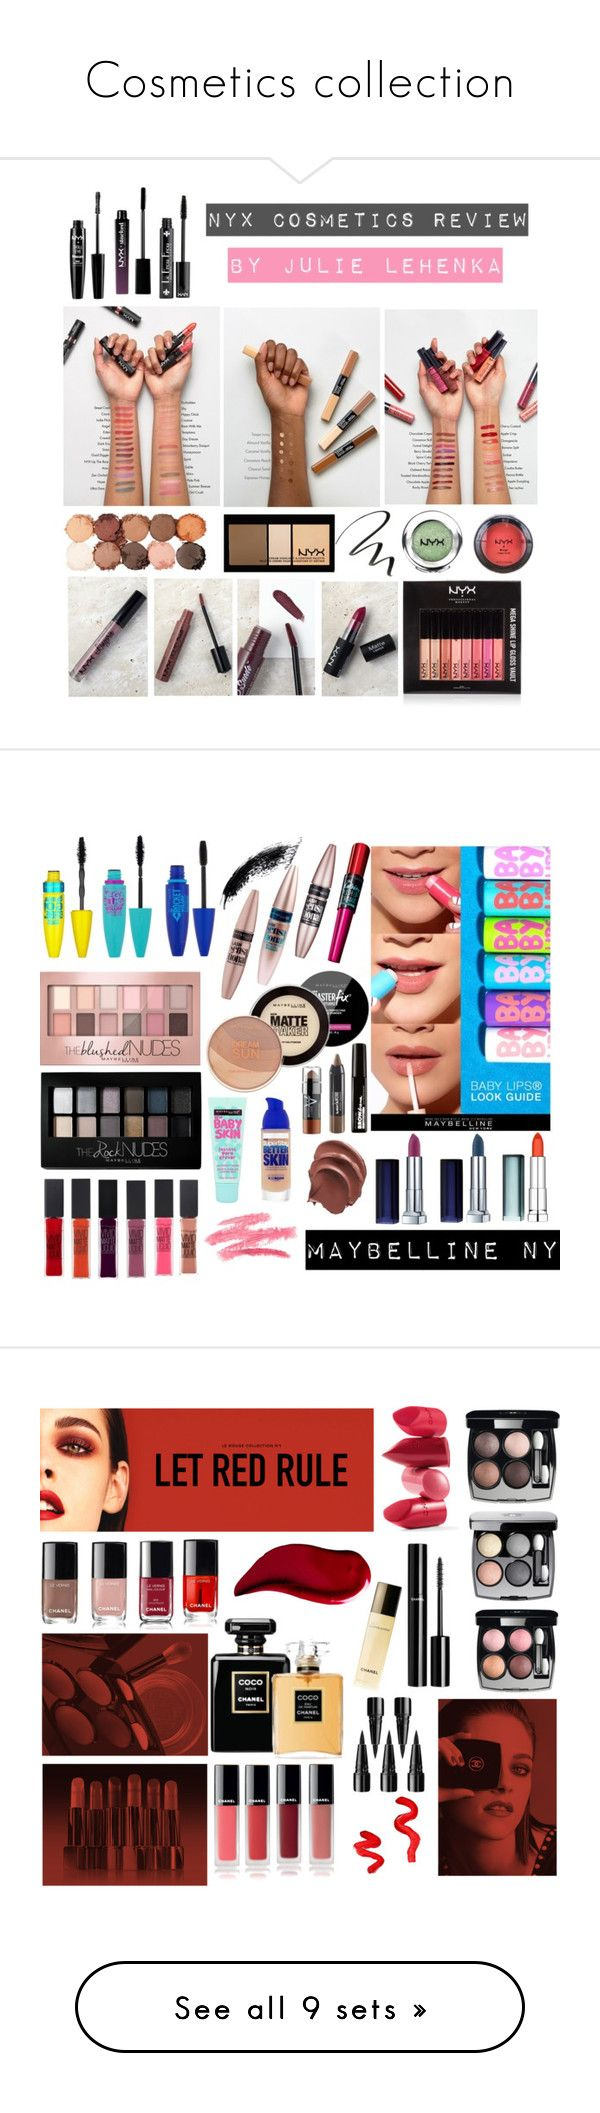 """""""Cosmetics collection"""" by julielehenka ❤ liked on Polyvore featuring beauty, NYX, Maybelline, Chanel, Rossetto, Kat Von D, Topshop, MAC Cosmetics, Jeffree Star and Burt's Bees"""